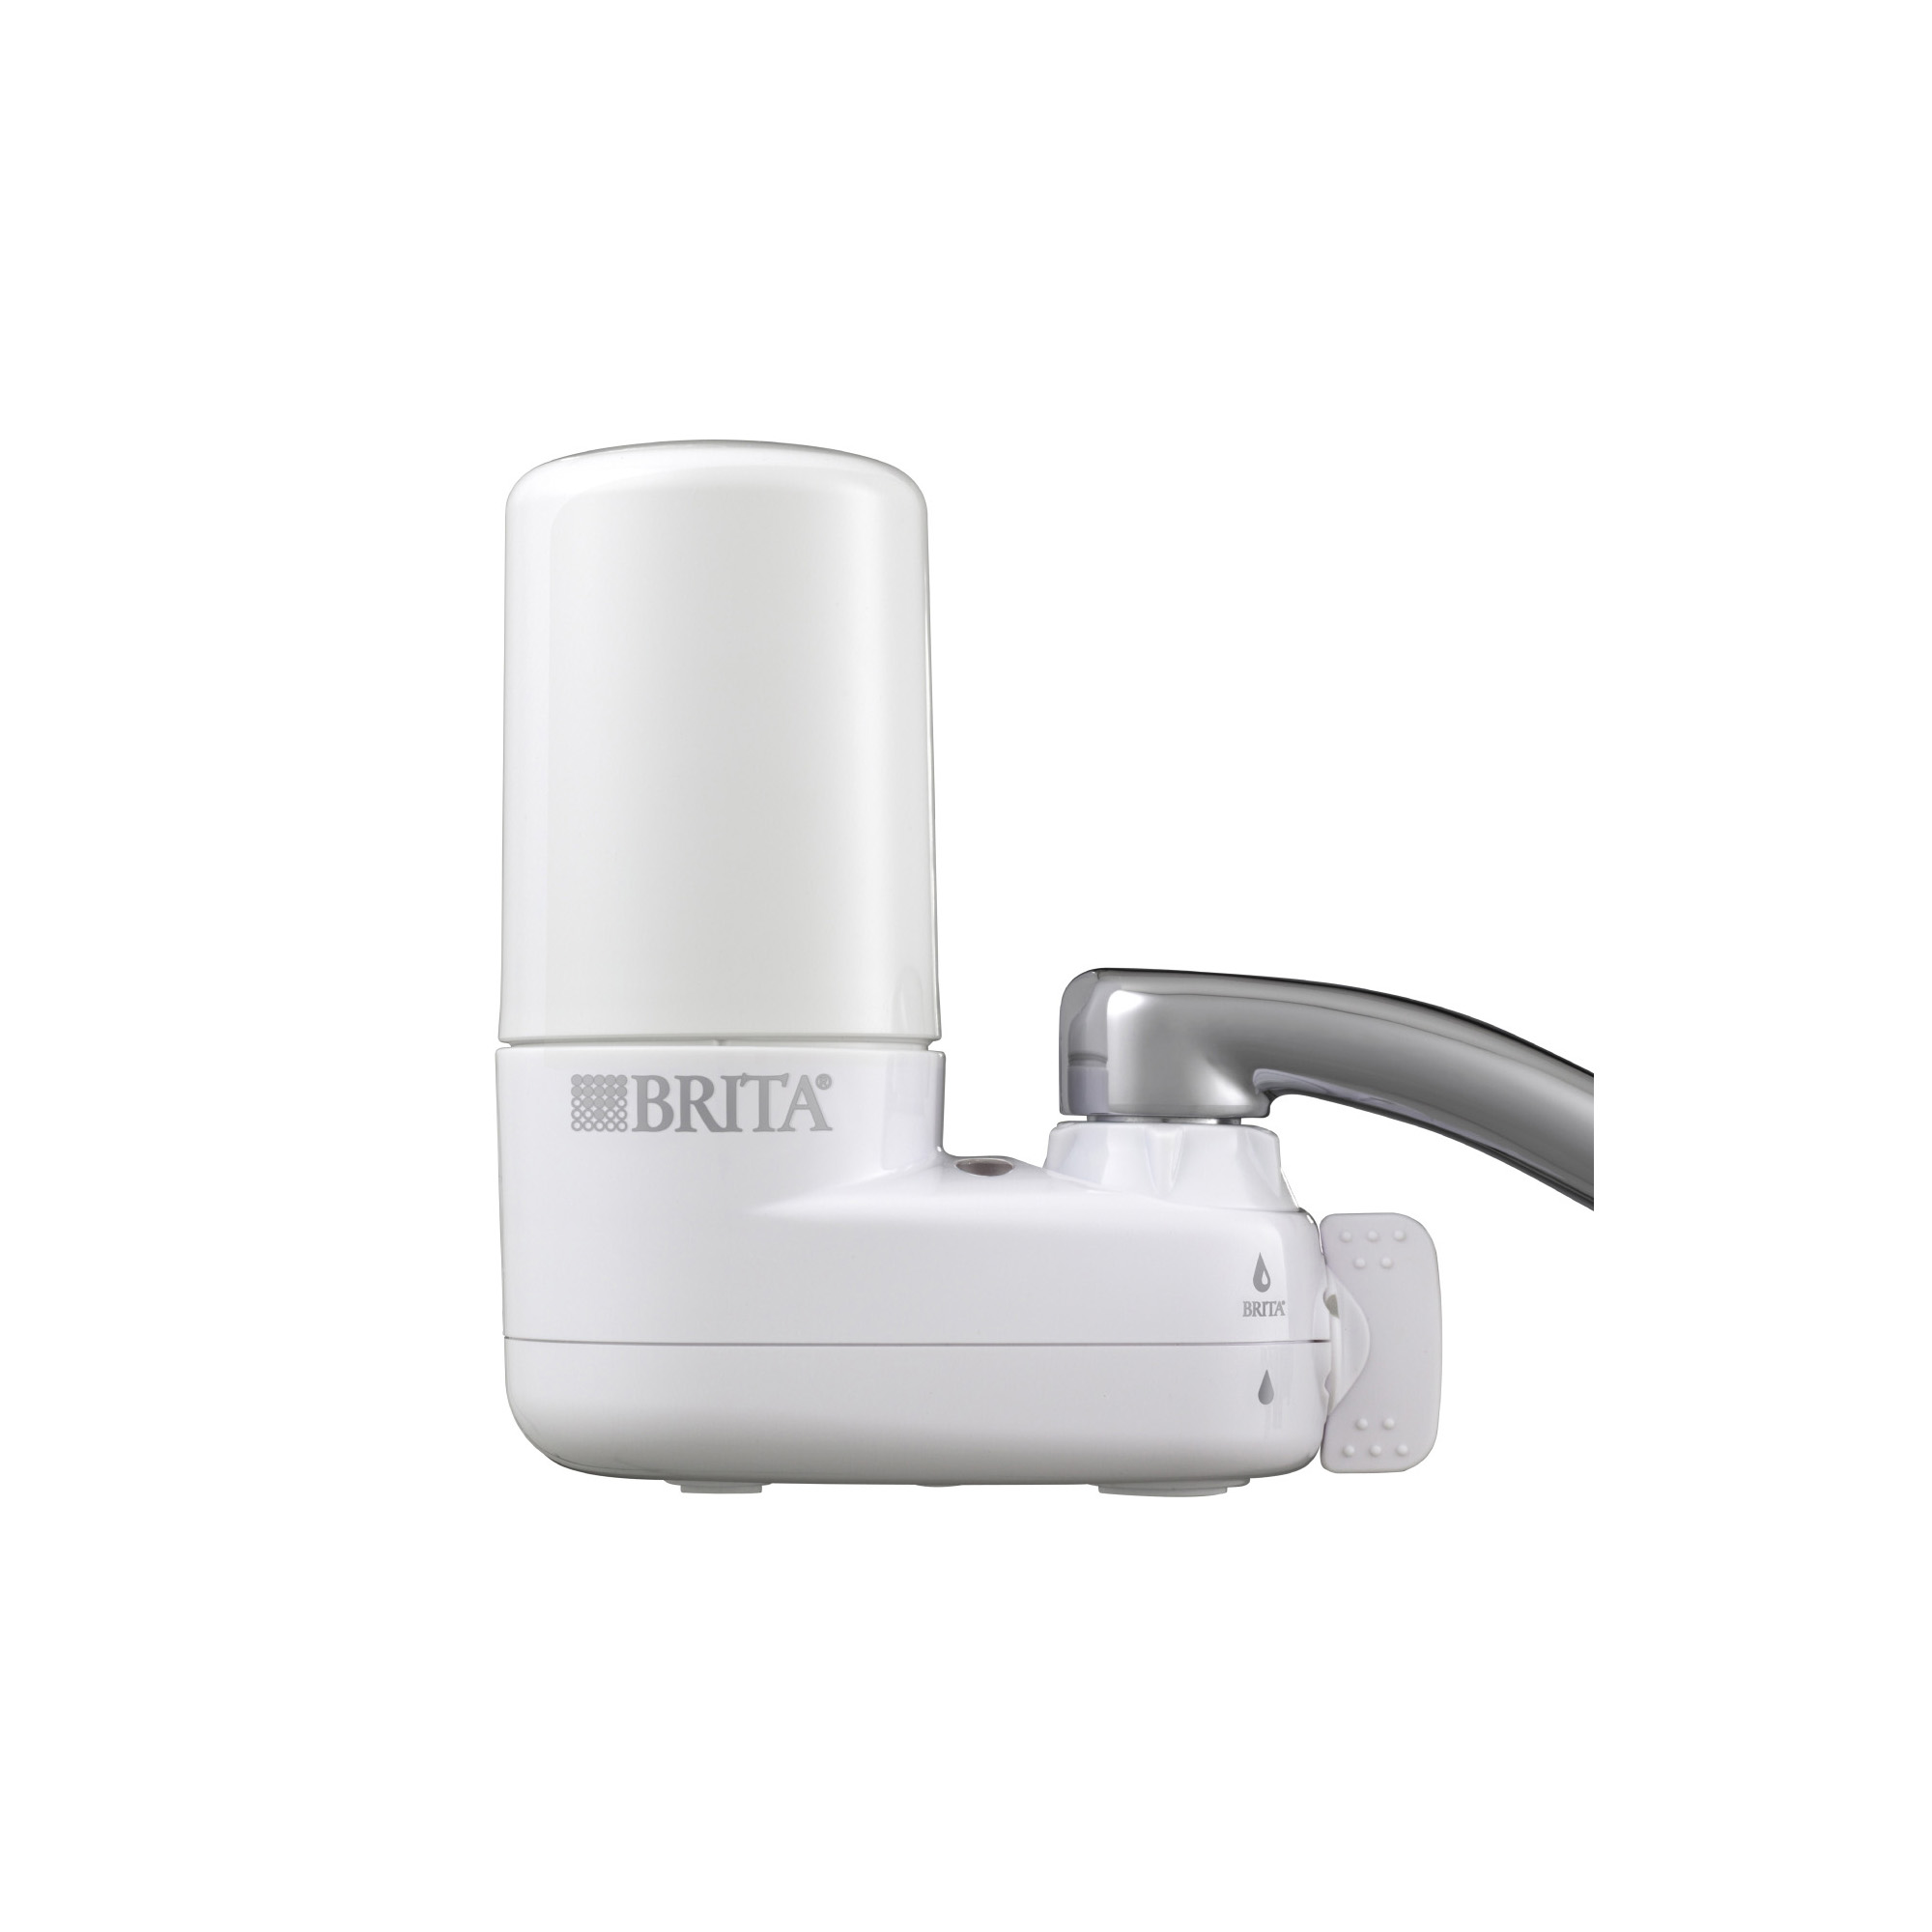 pur advanced faucet water filter chrome fm 3700b walmart